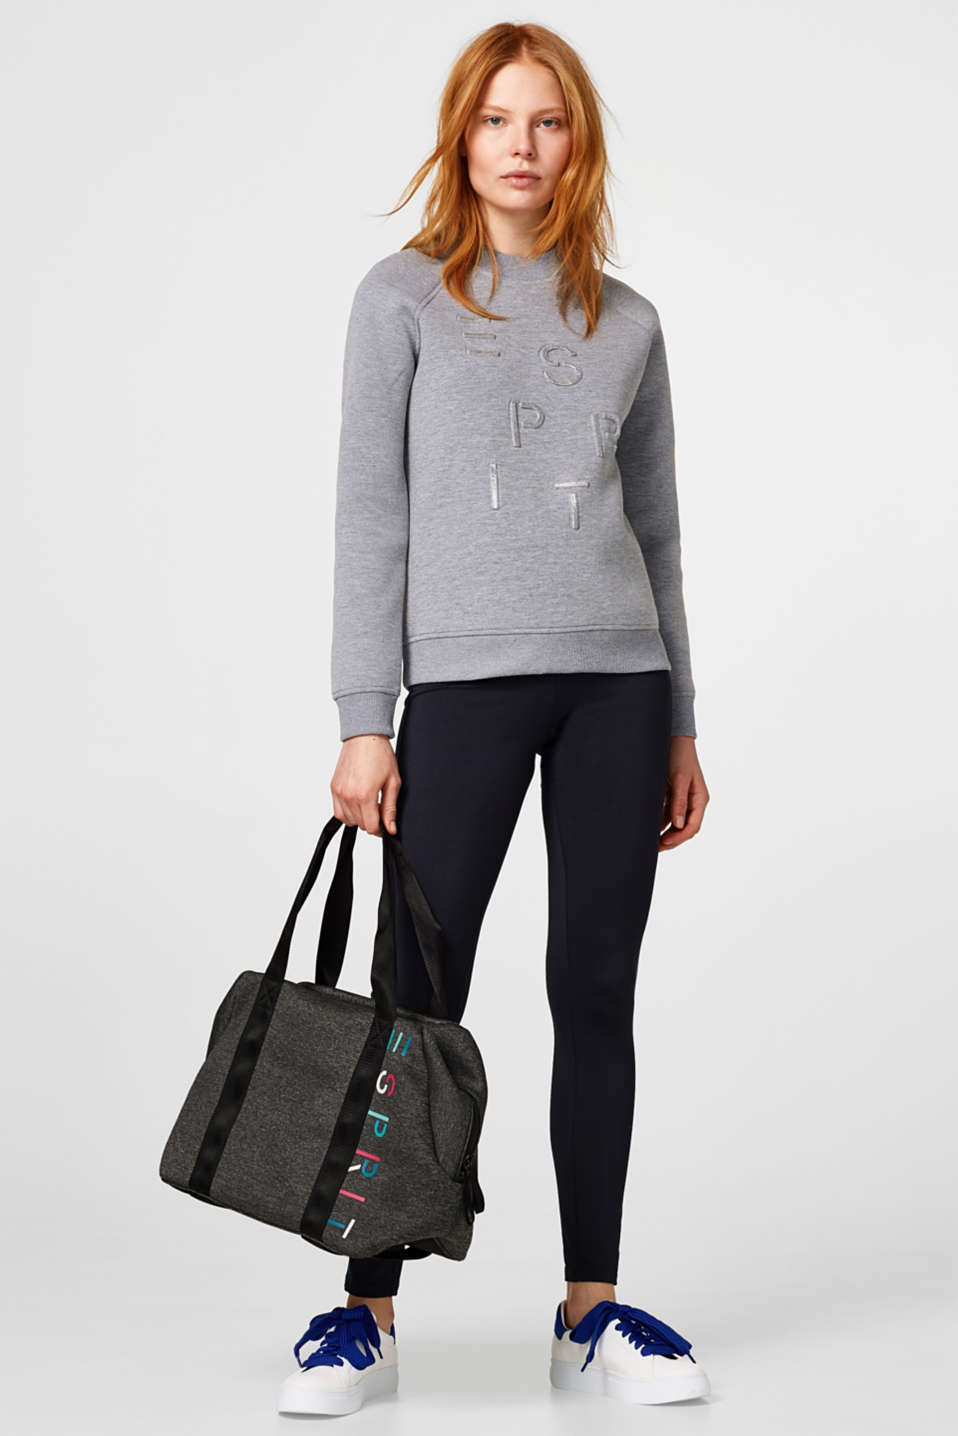 Hold-all bag in firm jersey